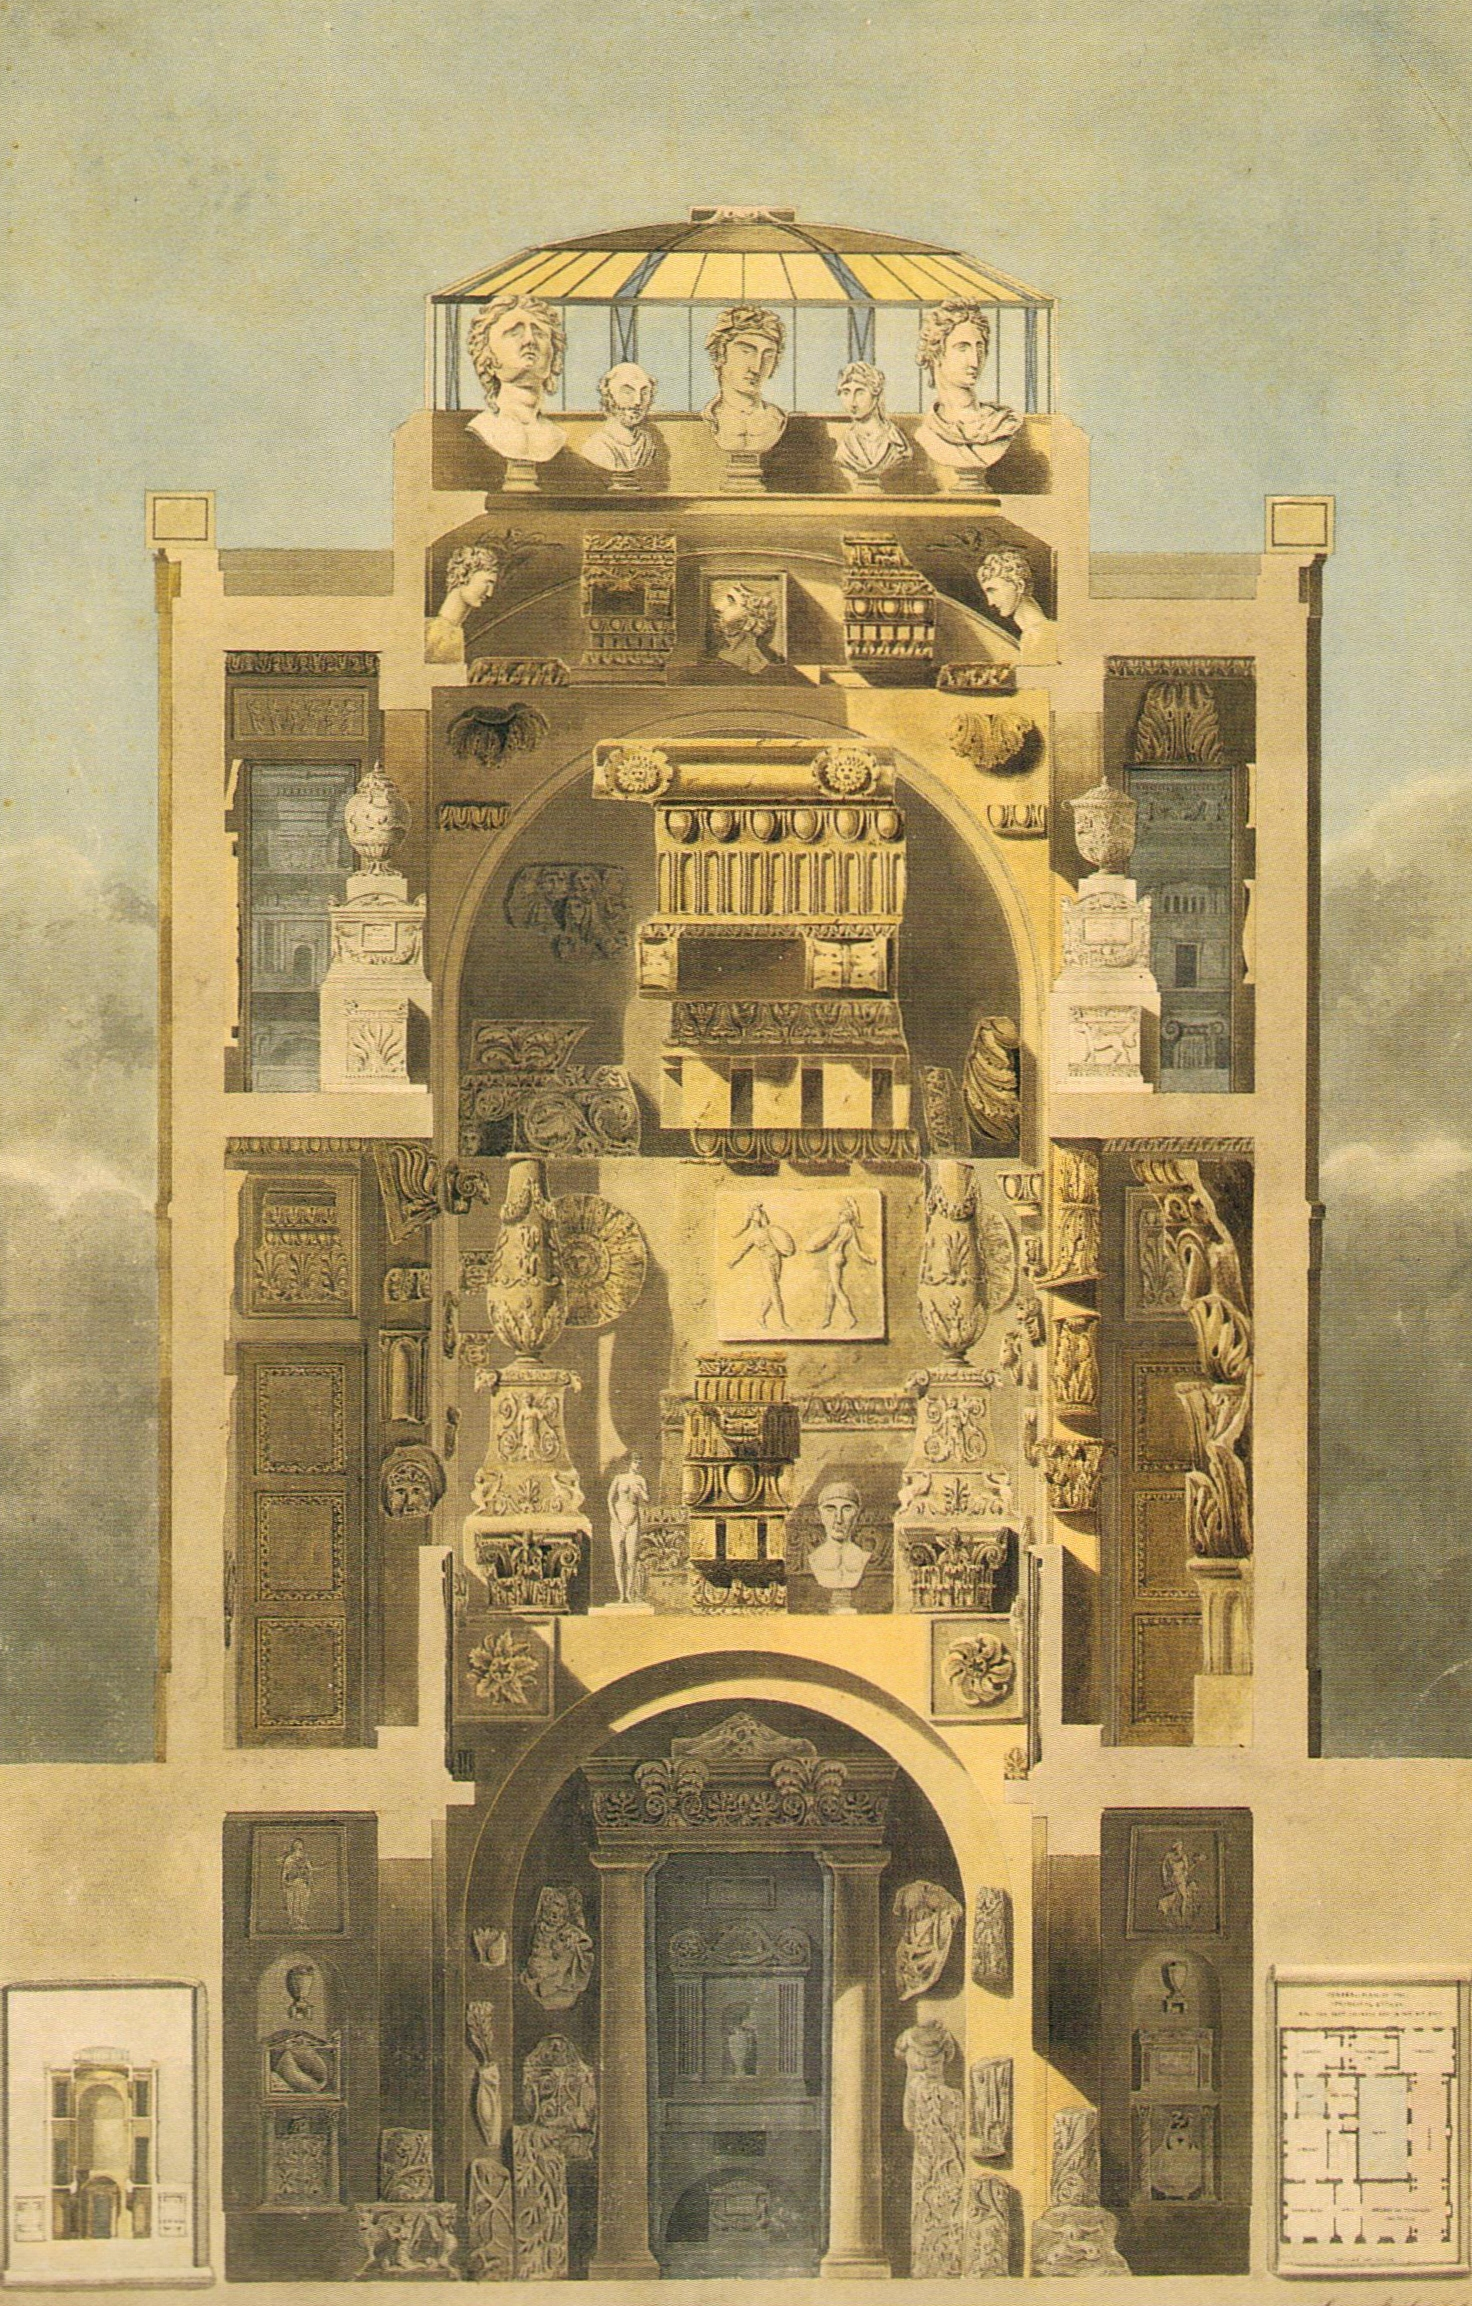 Drawn palace john soane Of Library Museum and Museum